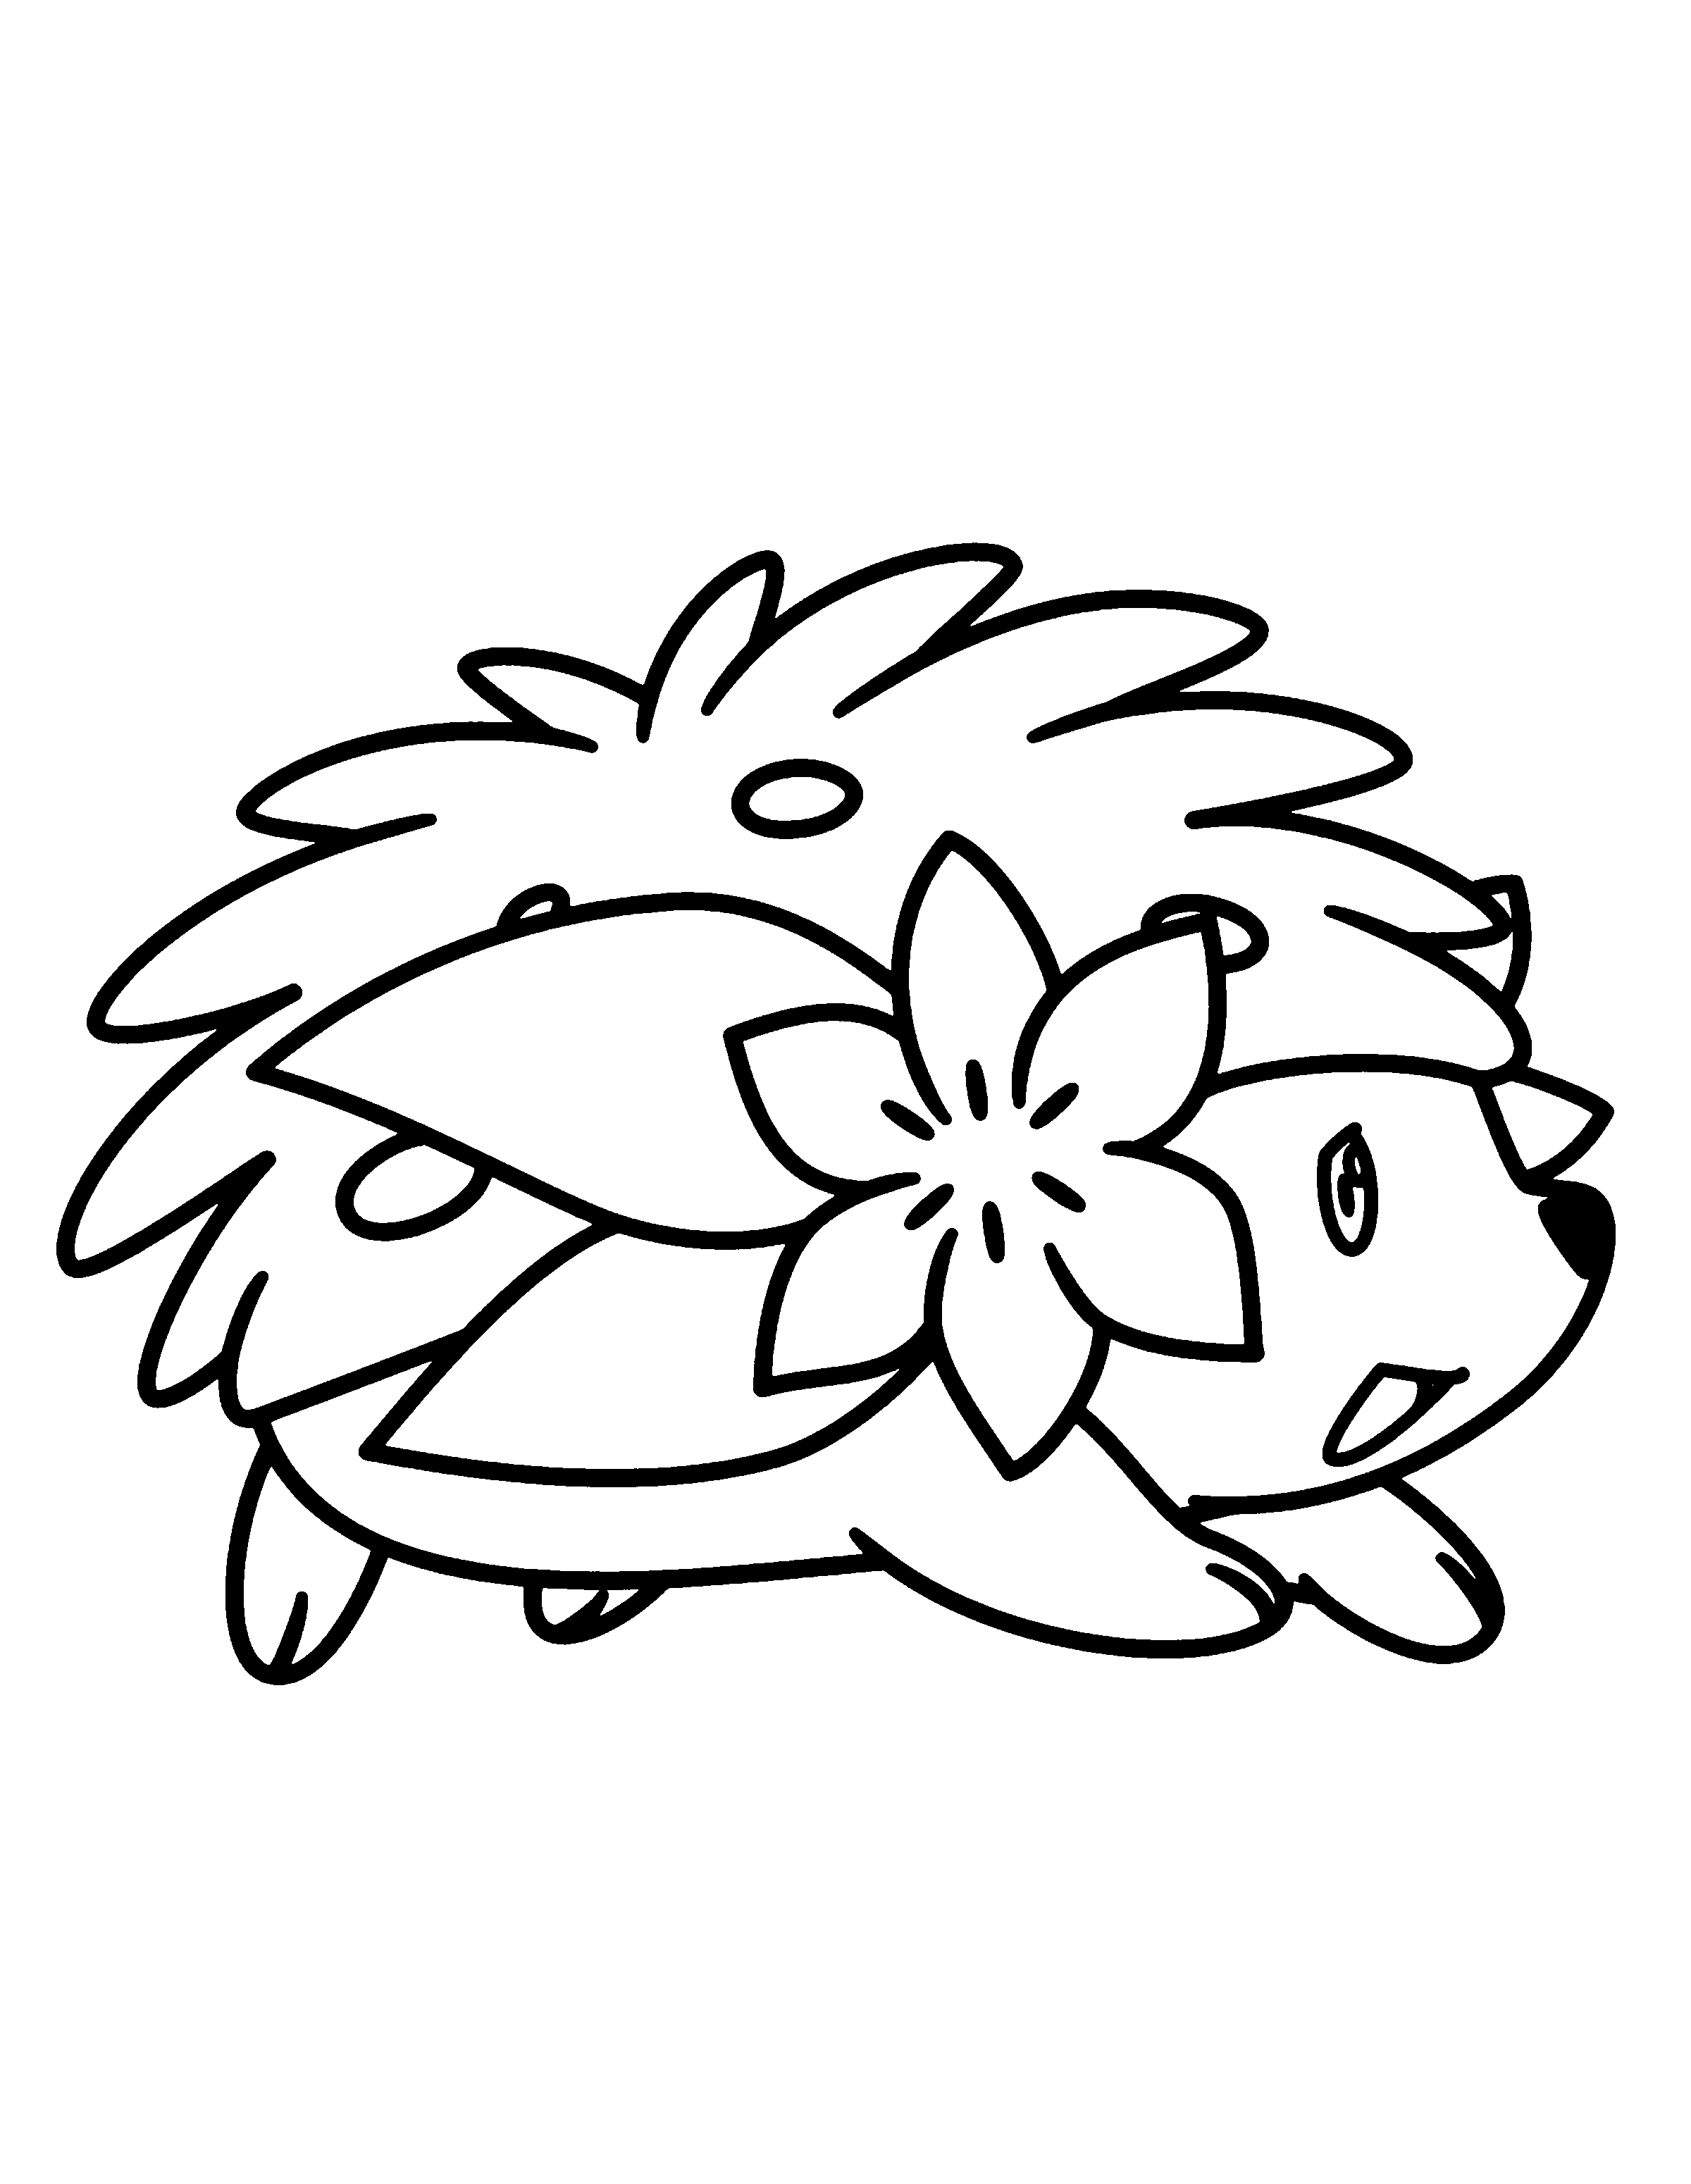 Coloring Pages Tv Series Coloring Pages Pokemon Diamond Pearl Pokemon Sketch Pokemon Coloring Pokemon Drawings